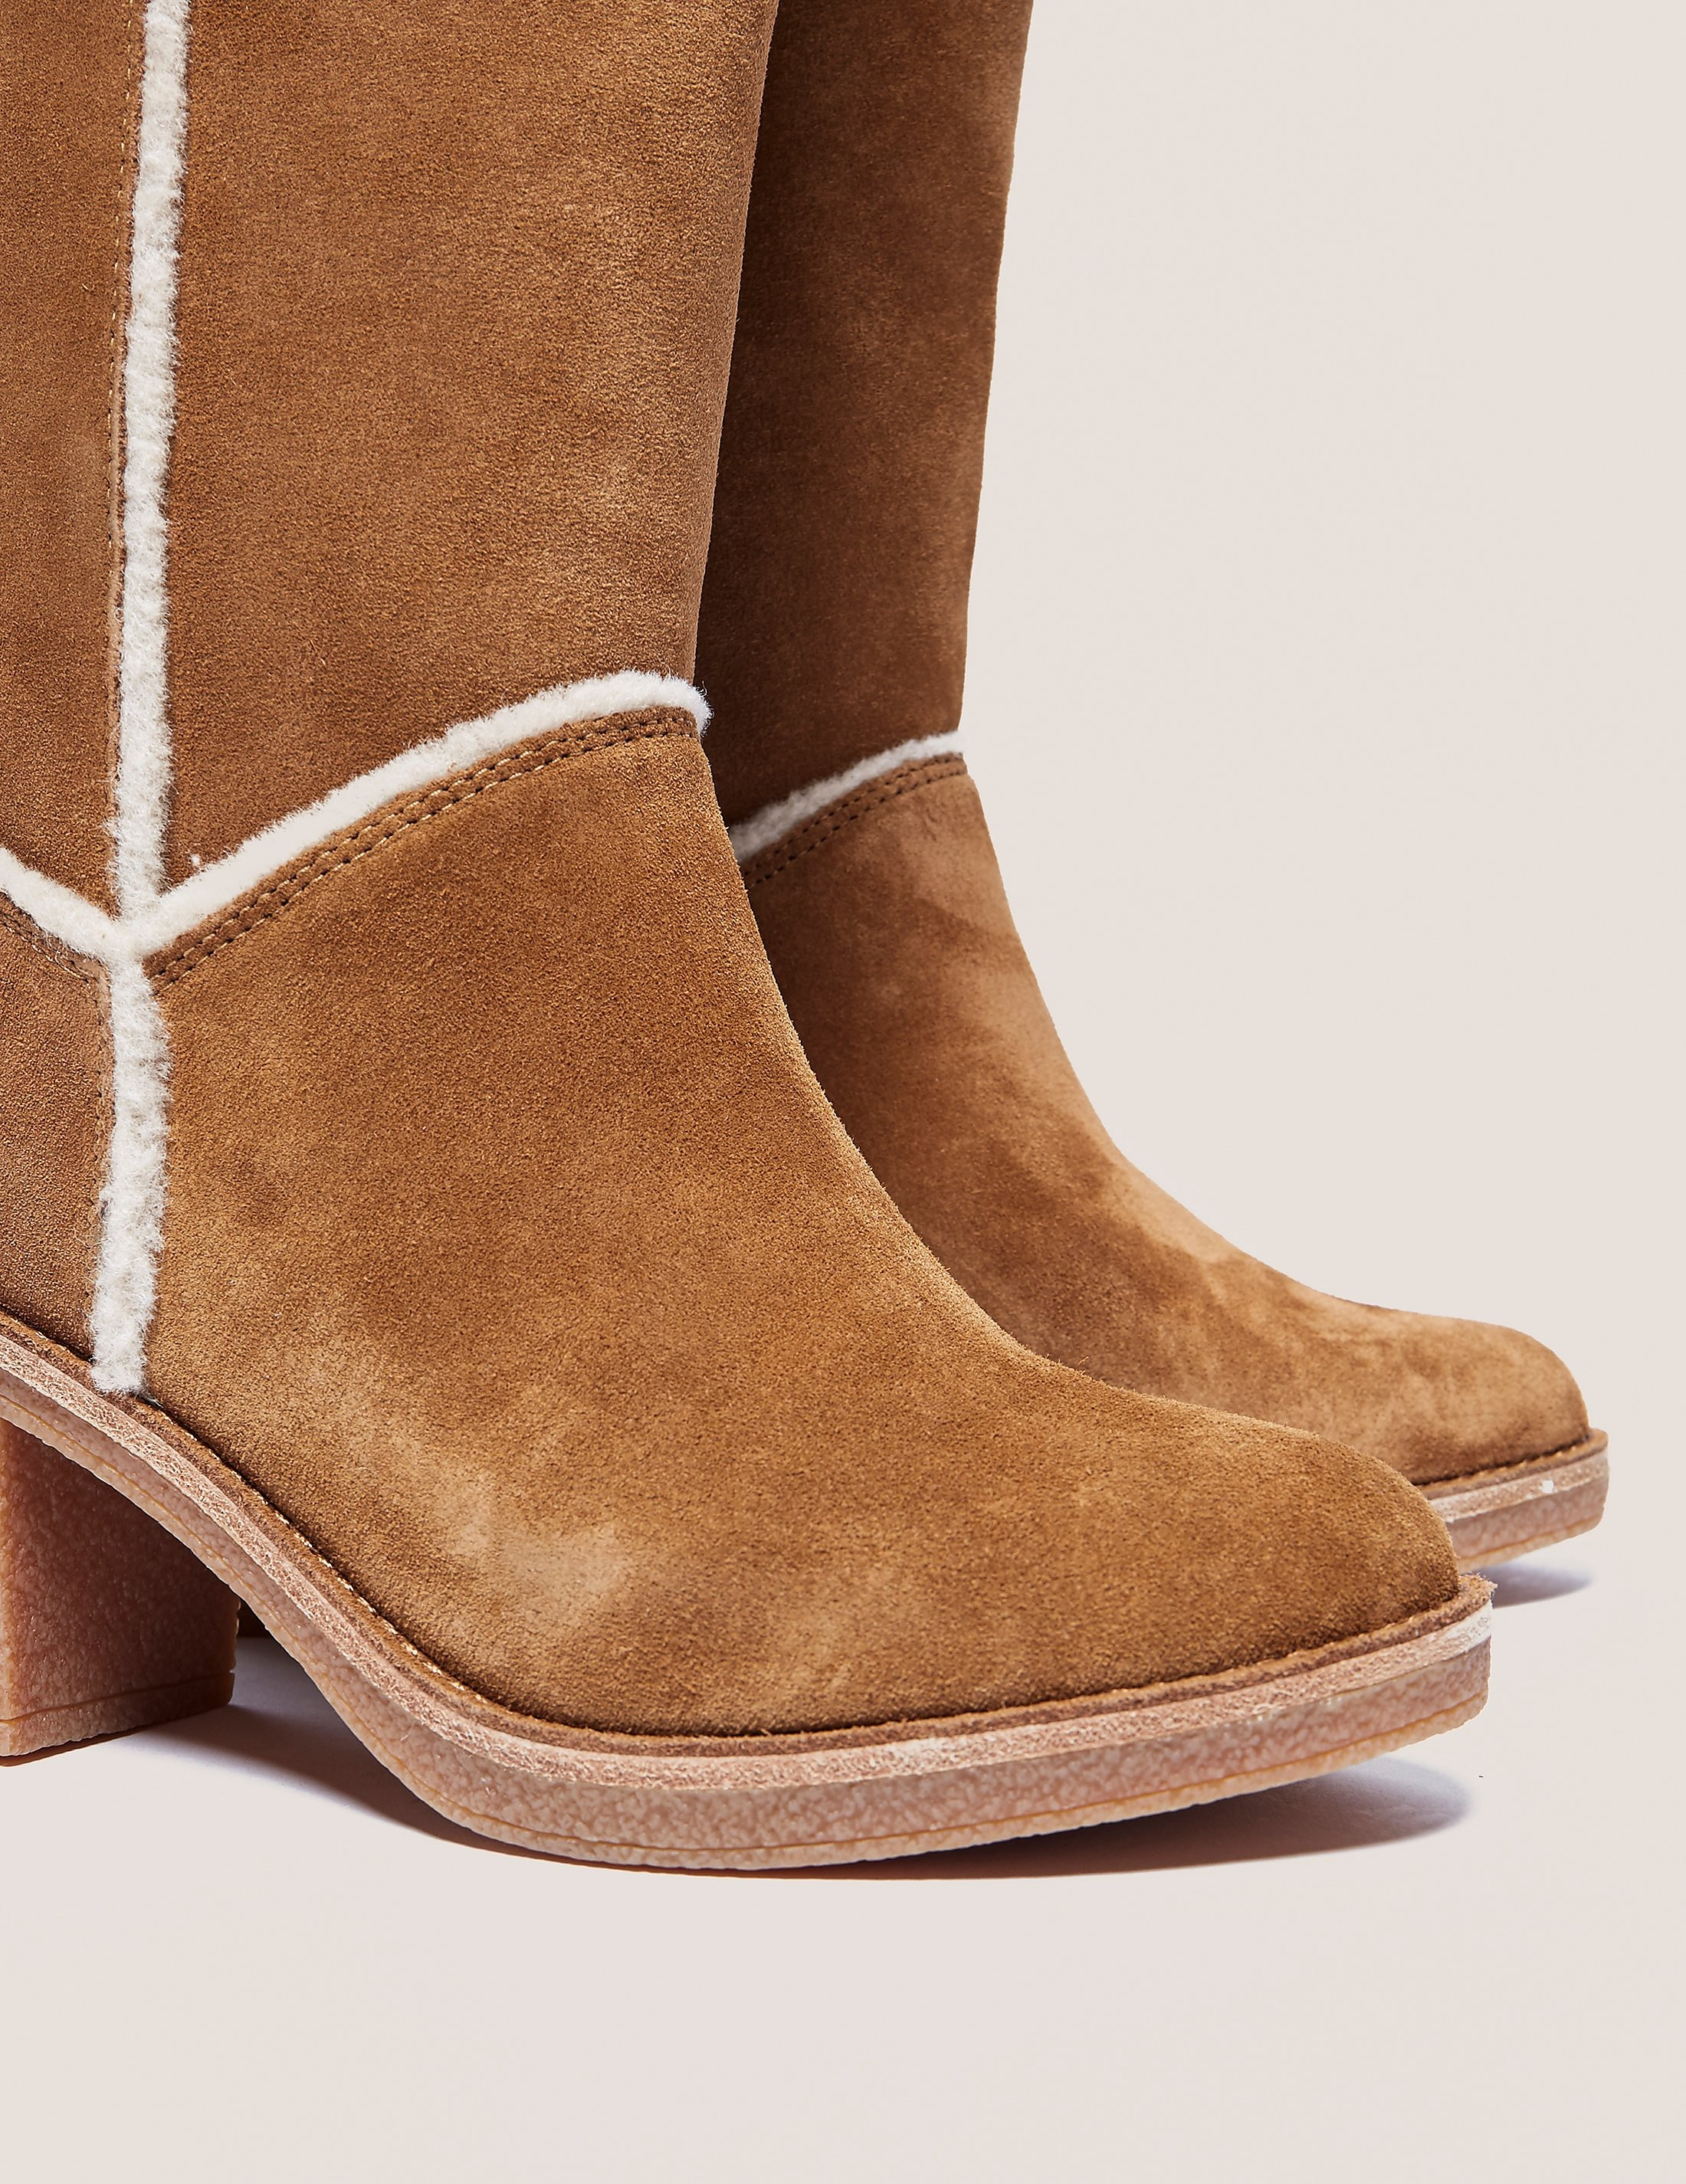 UGG Kasen Tall Boots - Online Exclusive